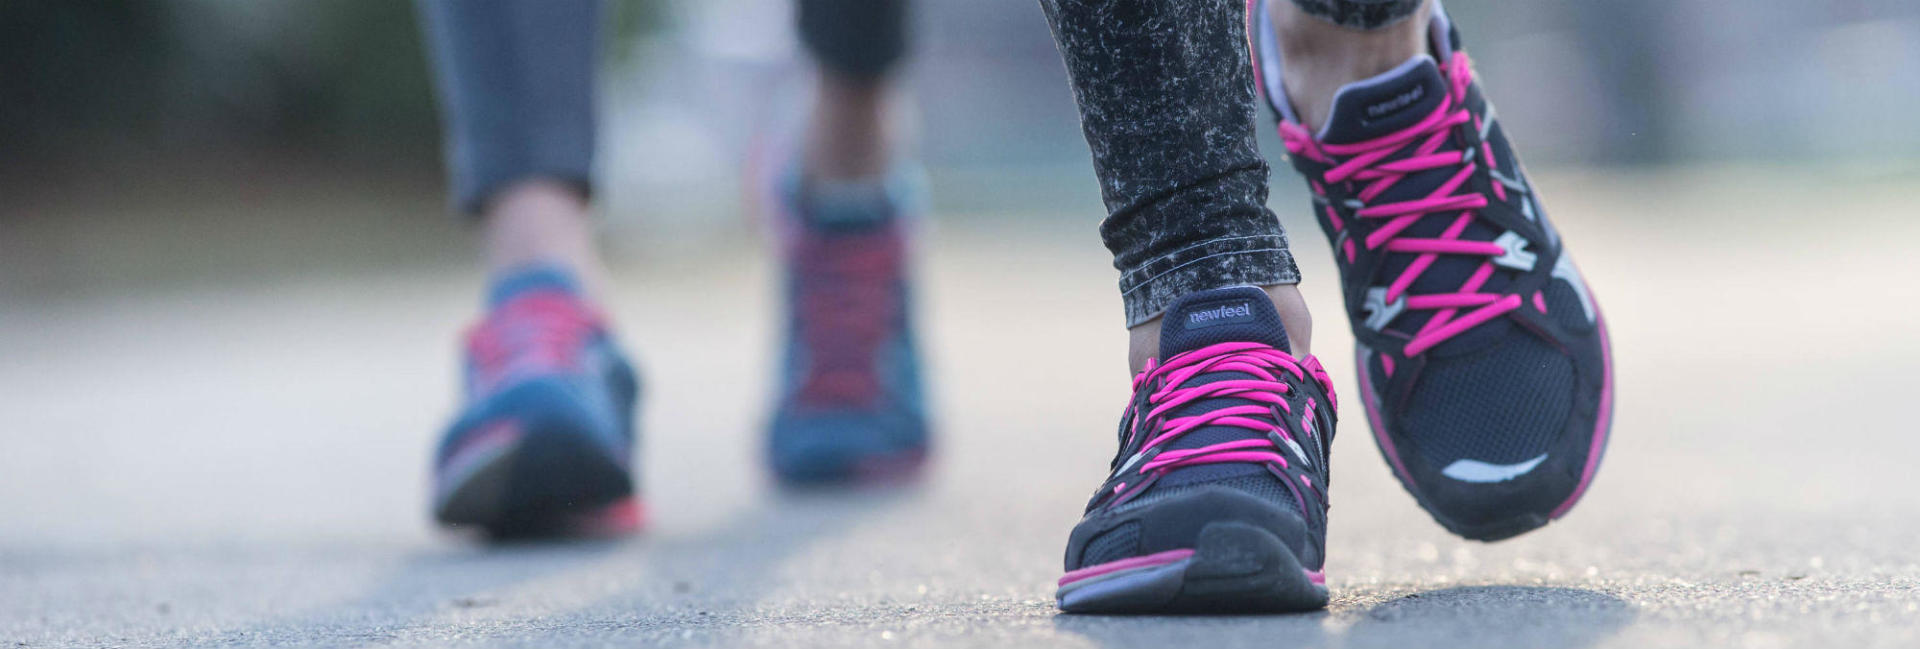 Power Walking And Running: What's The Difference?